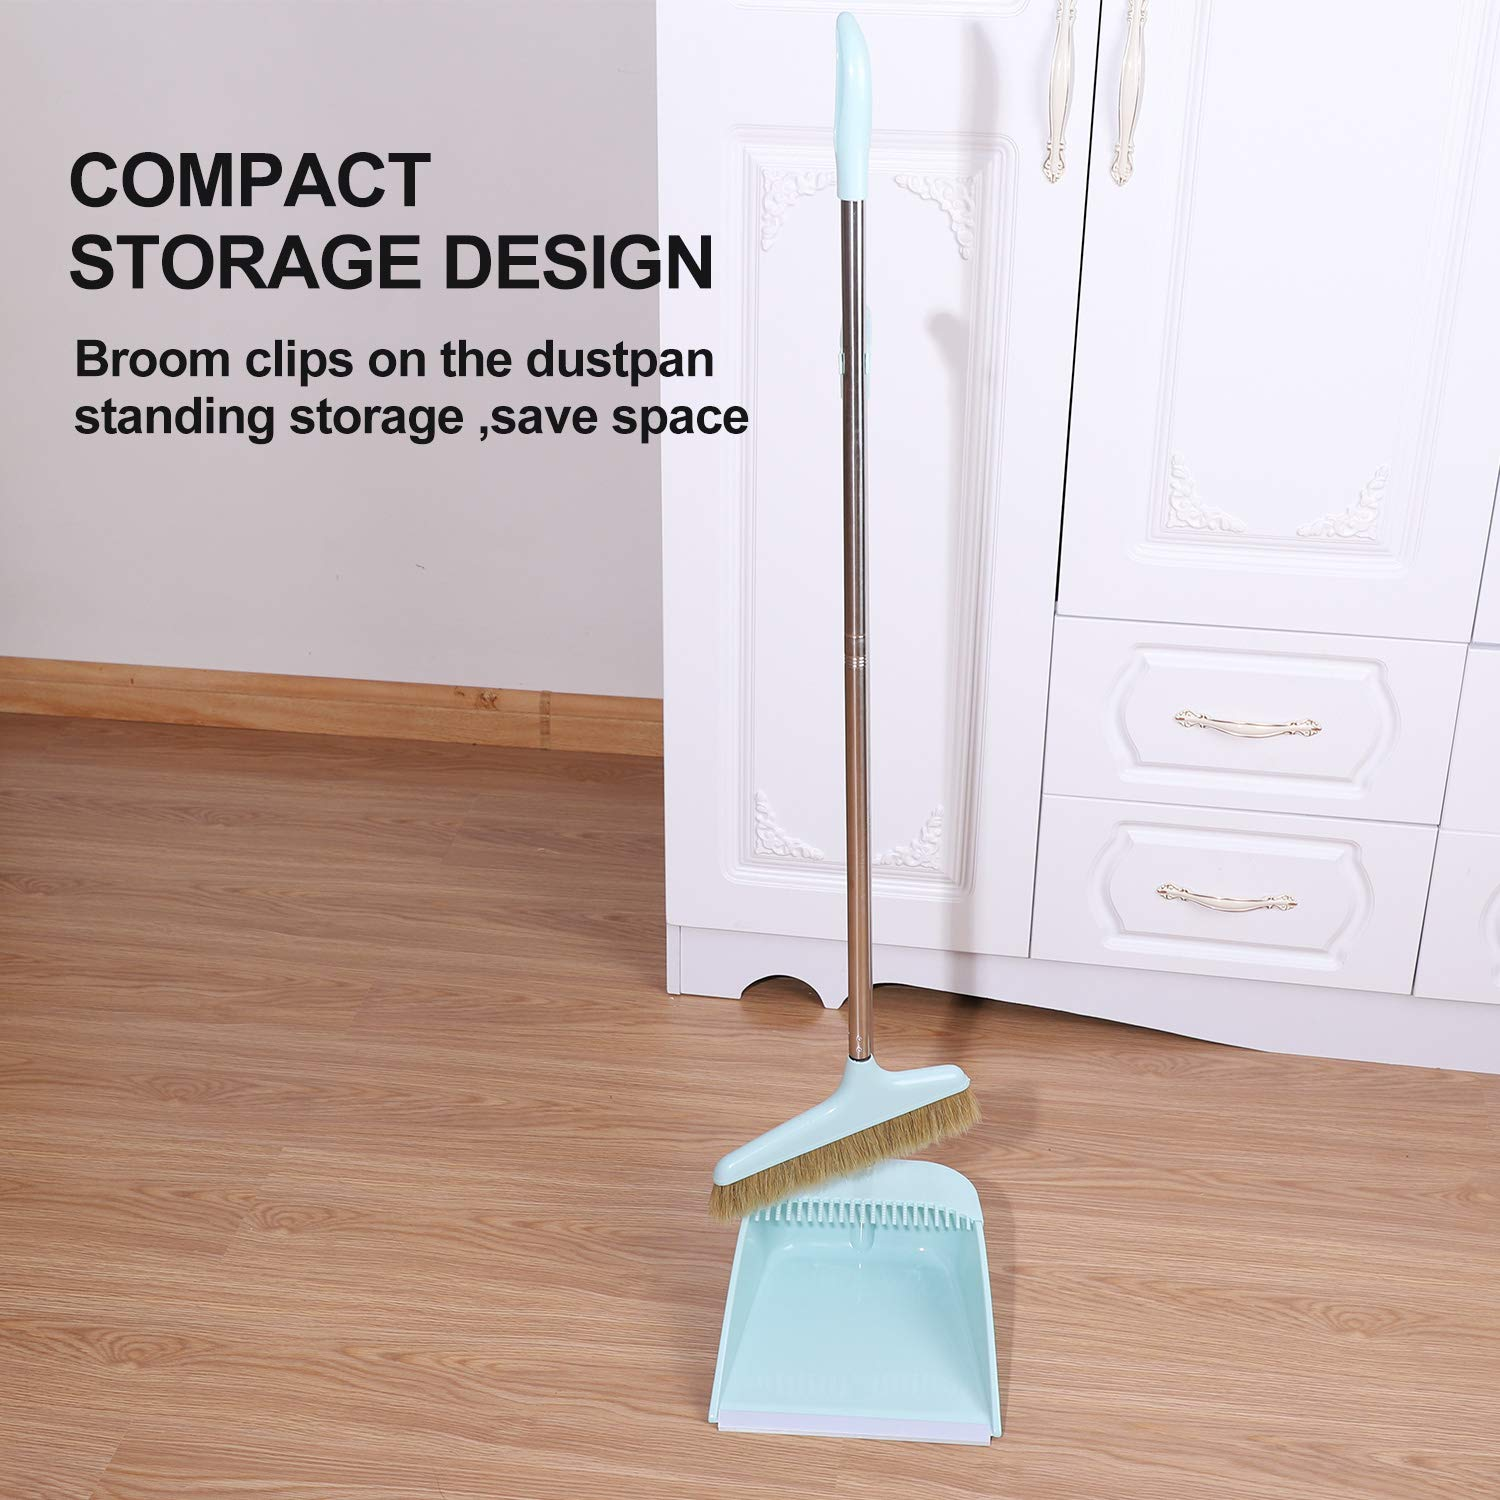 Midoneat Broom and Dustpan Set Squeegee 3 Packs Good Grips Sweep Set with Long Handle Natural hog Bristle Broom Rubber Lip Dustpan with Comb 180° Rotation Wiper .Sweeping for Kitchen Lobby Office by midoneat (Image #5)